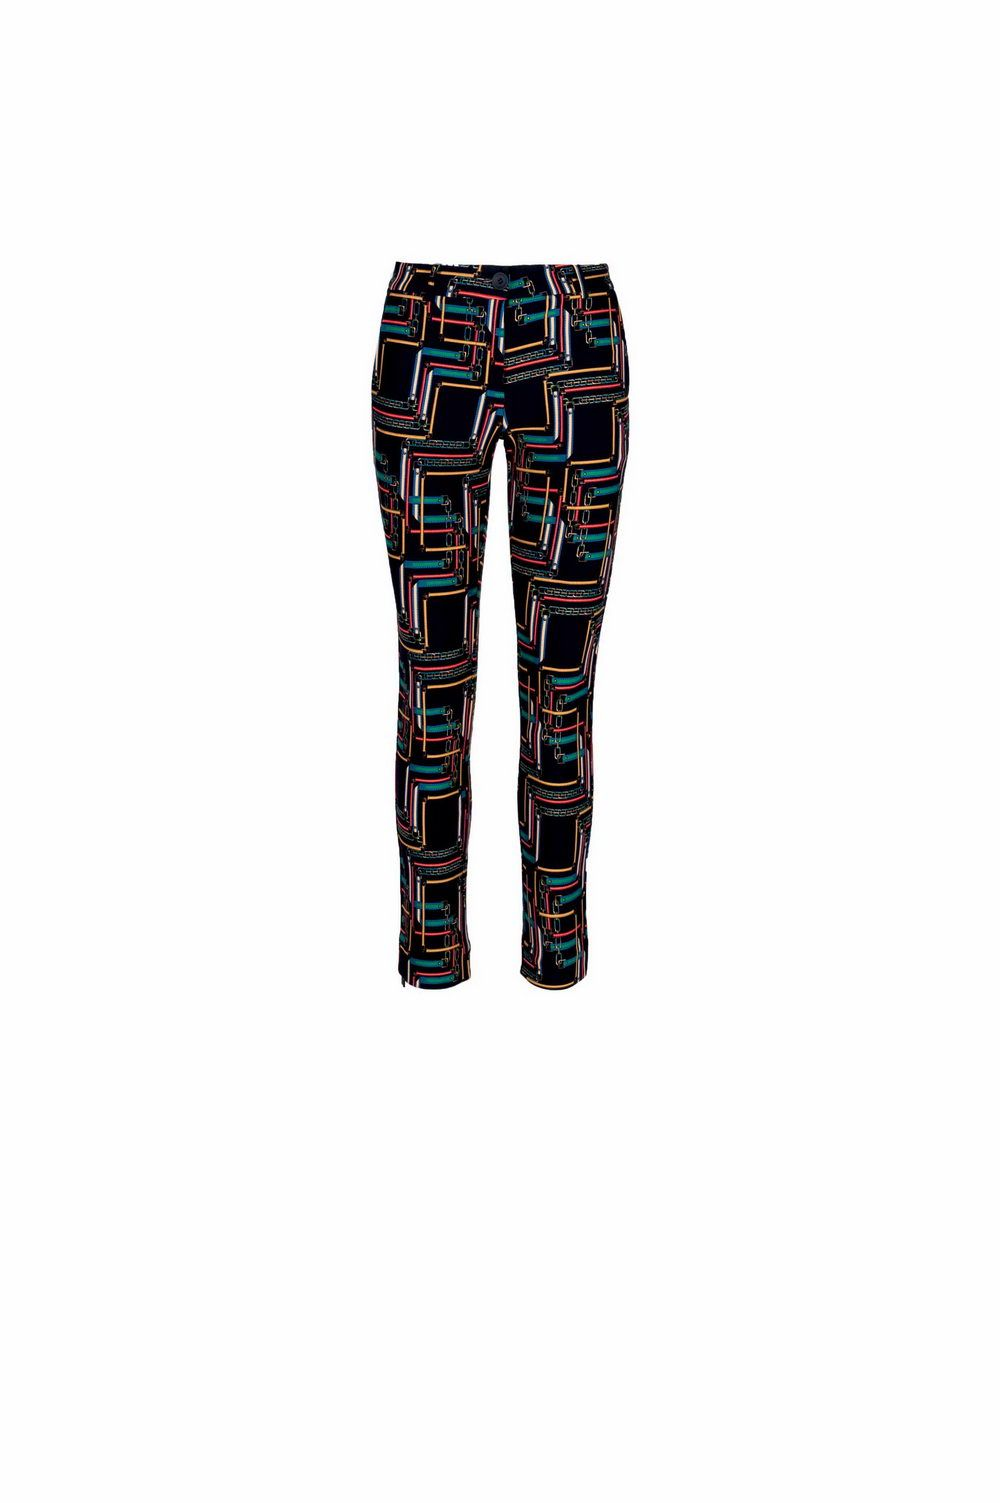 AnonymeDesigners_R139FP051 - Trouses - PVP 120,60€_resize